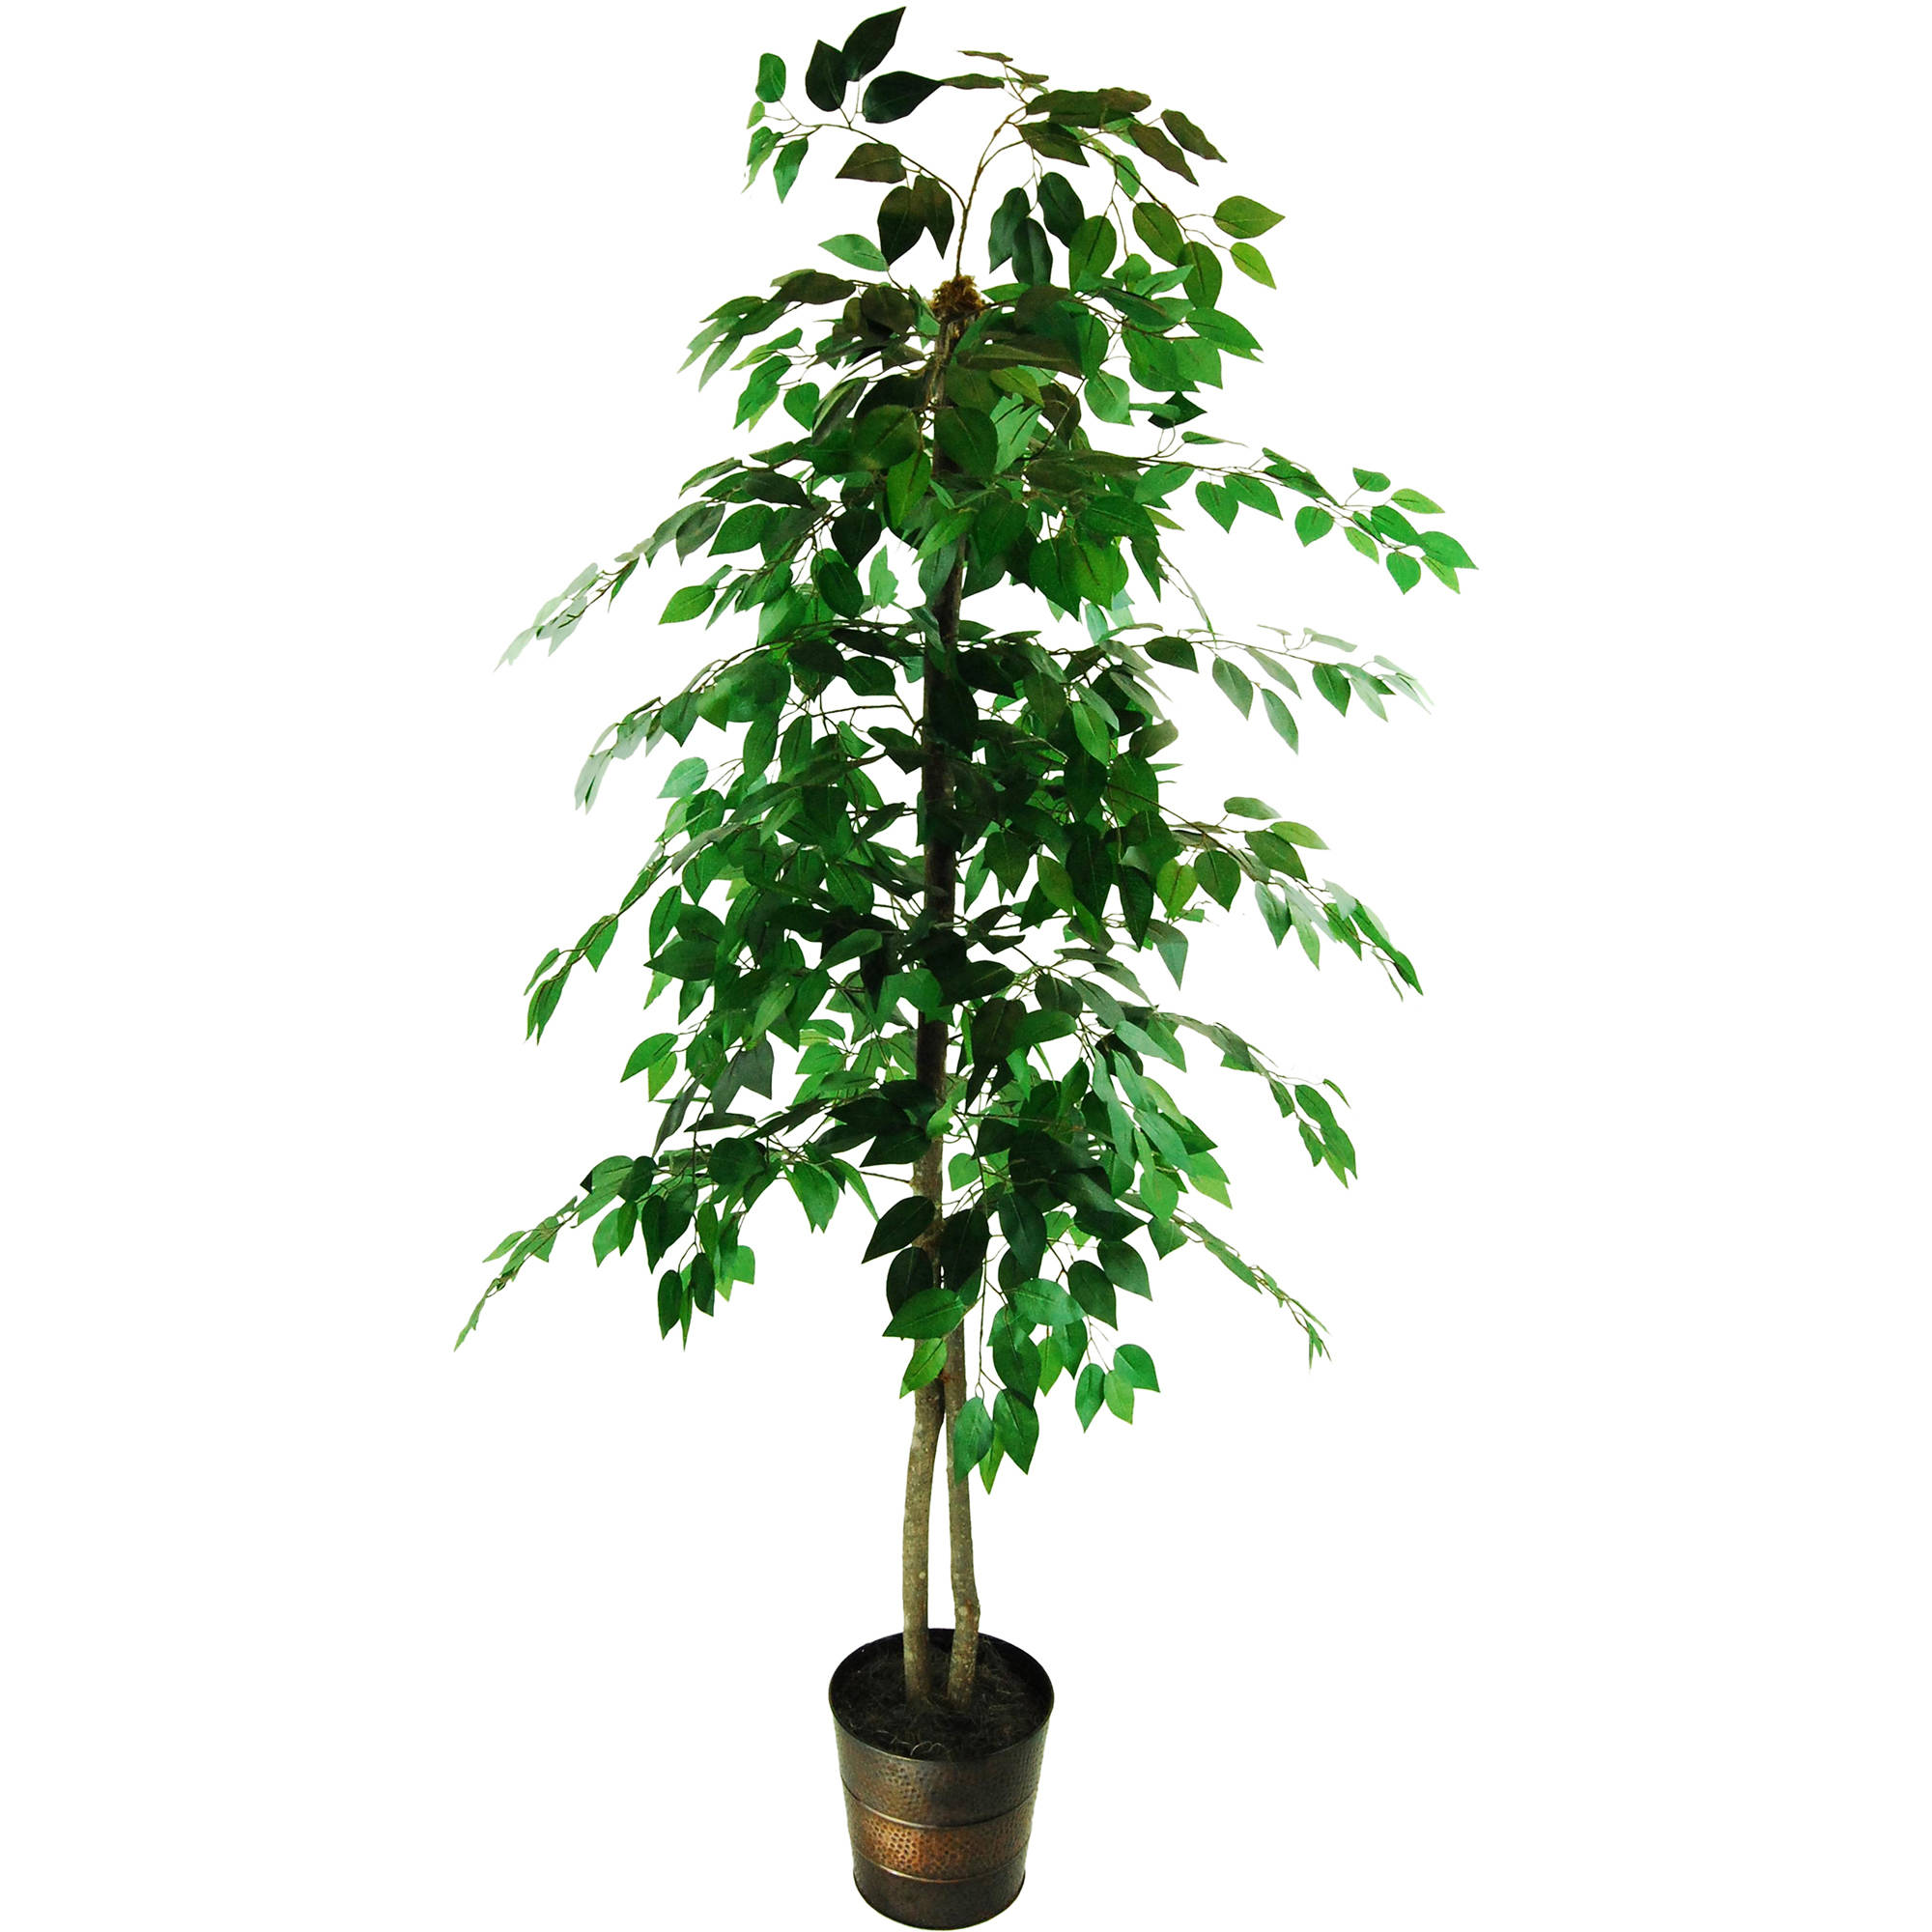 Ficus Tree in an Embossed Metal Container